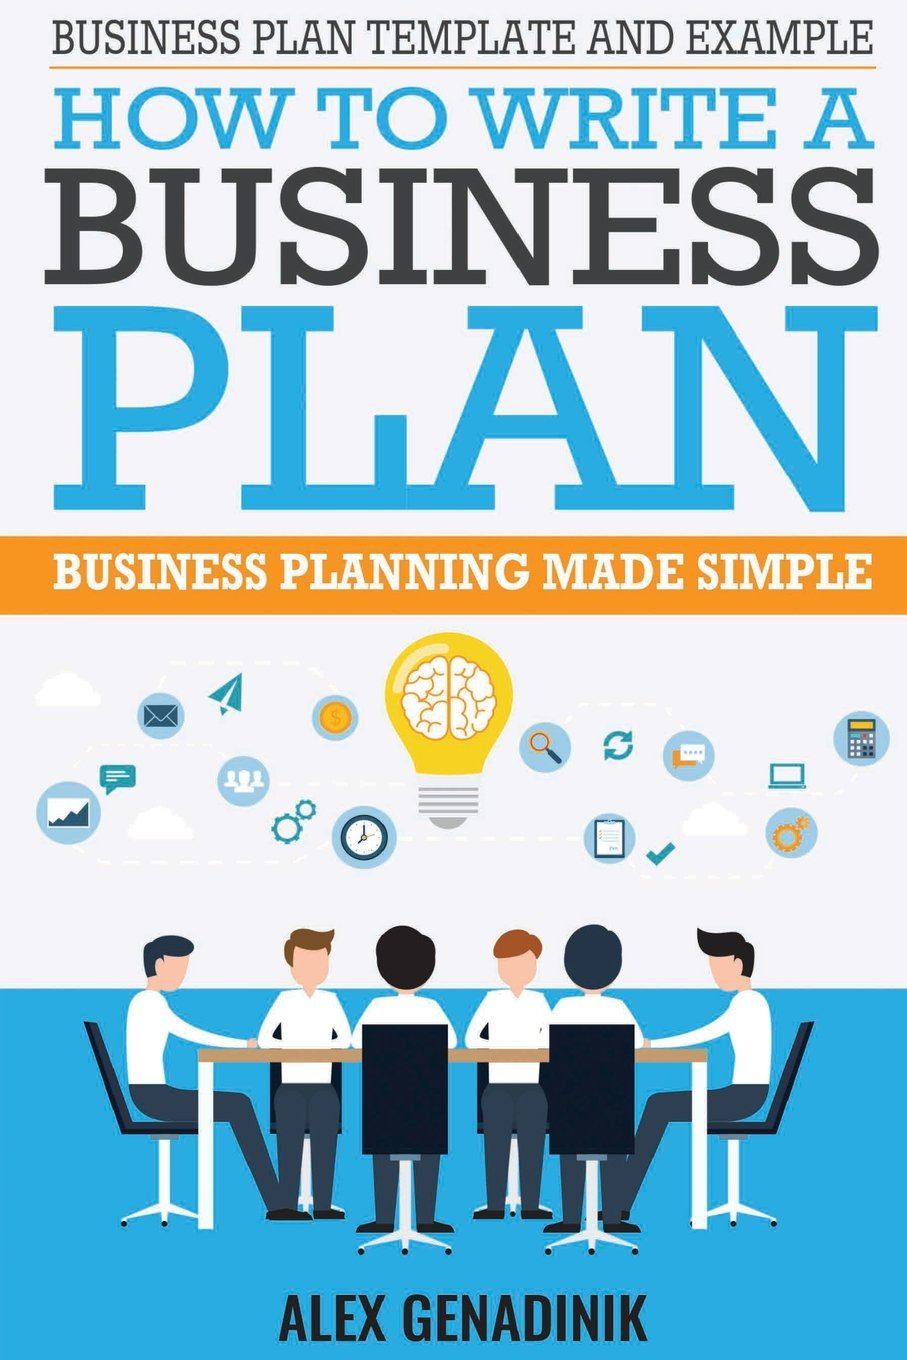 Business plan template and example how to write a business plan business plan template and example how to write a business plan business planning made simple alex genadinik 9781519741783 amazon books accmission Choice Image